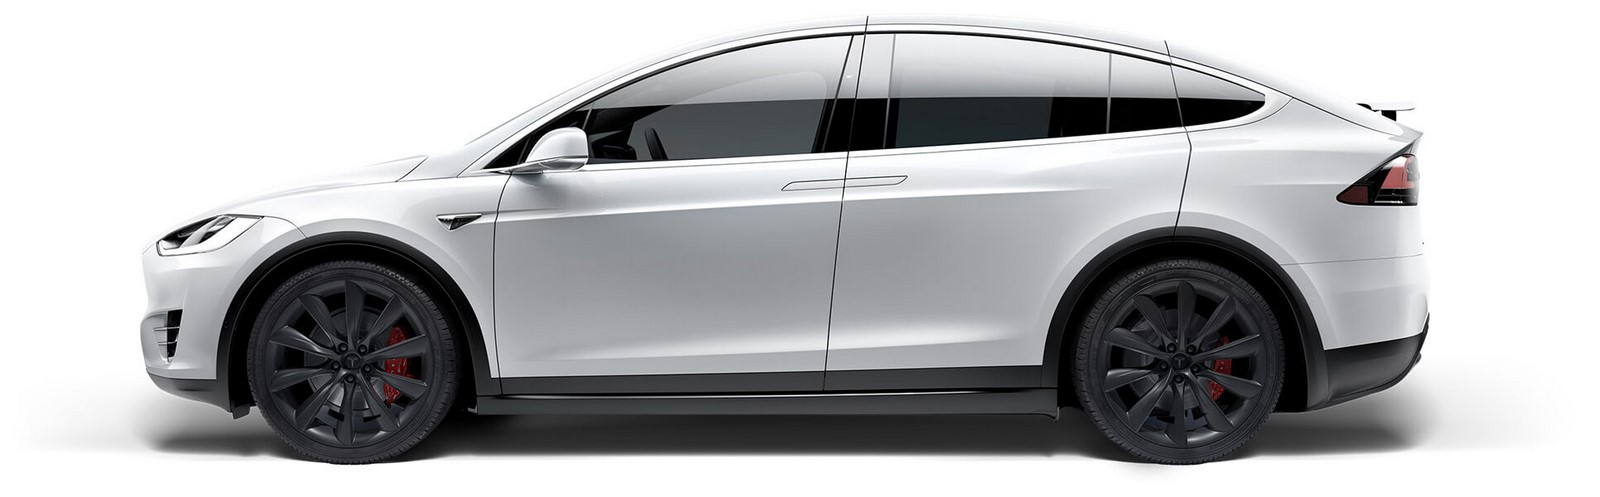 What are Tesla Trunks? - Sheet5